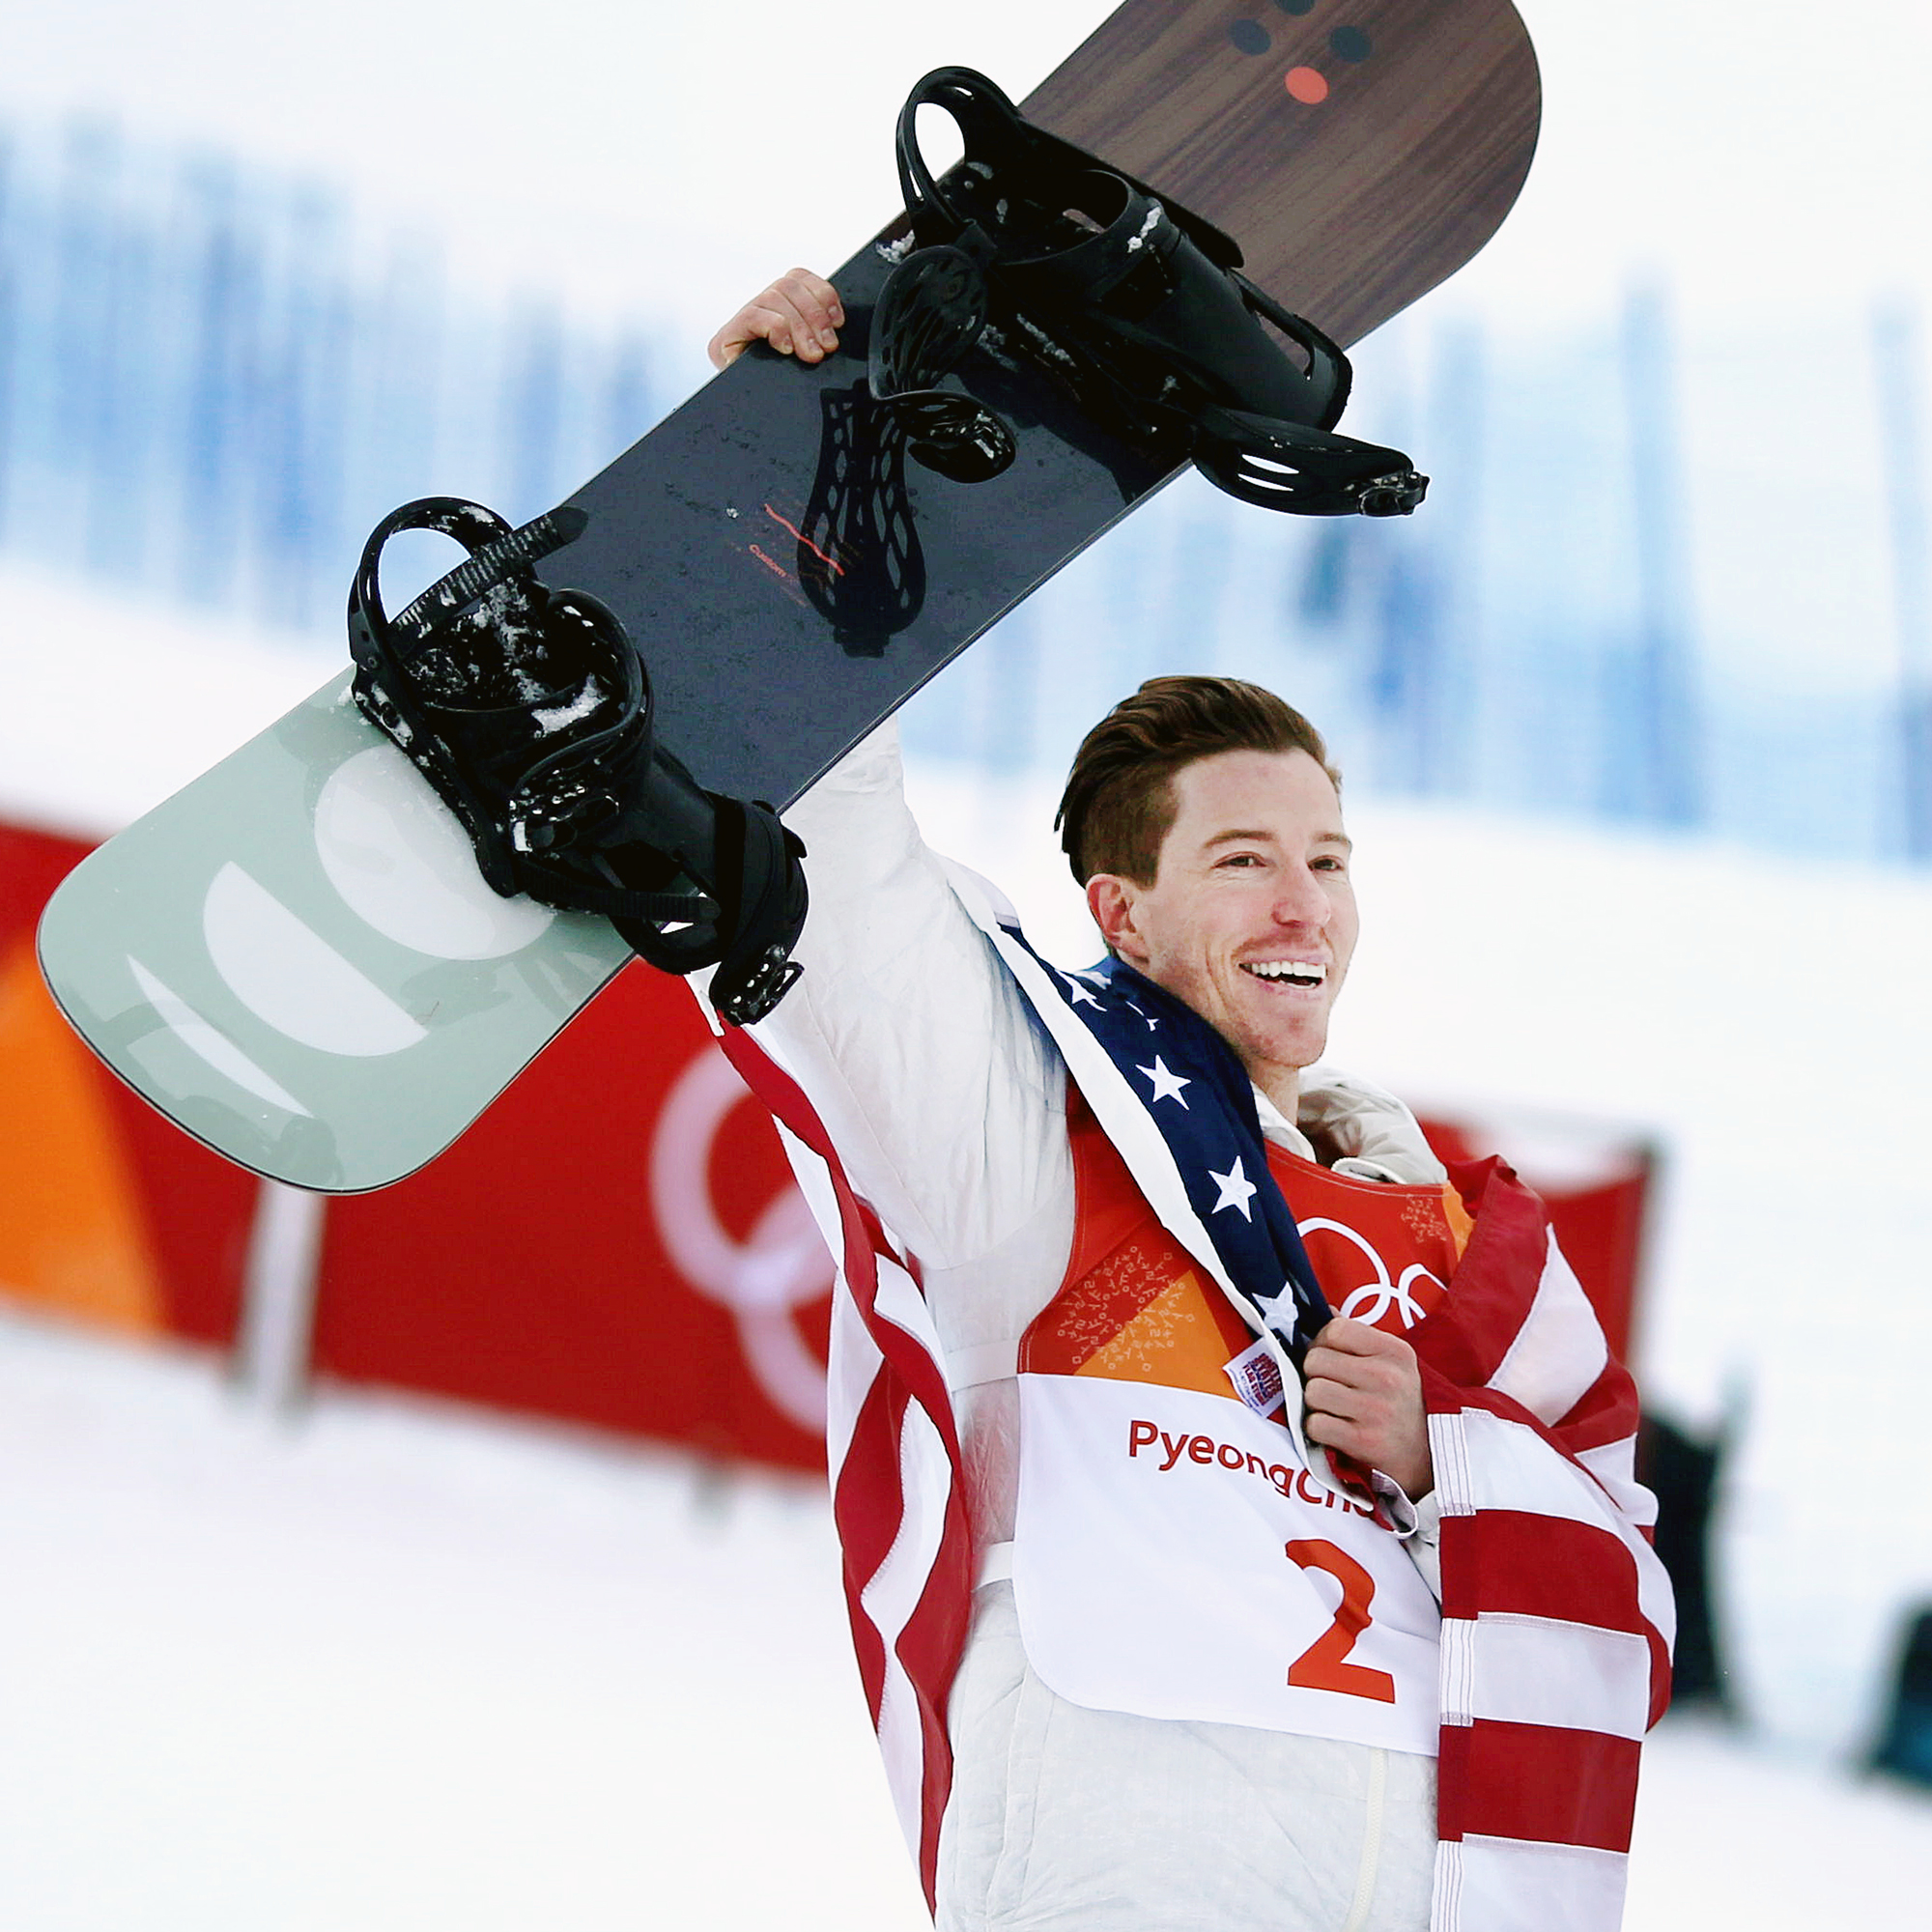 Watch Shaun White Cry Tears of Joy After Winning His Record-Breaking Gold Medal